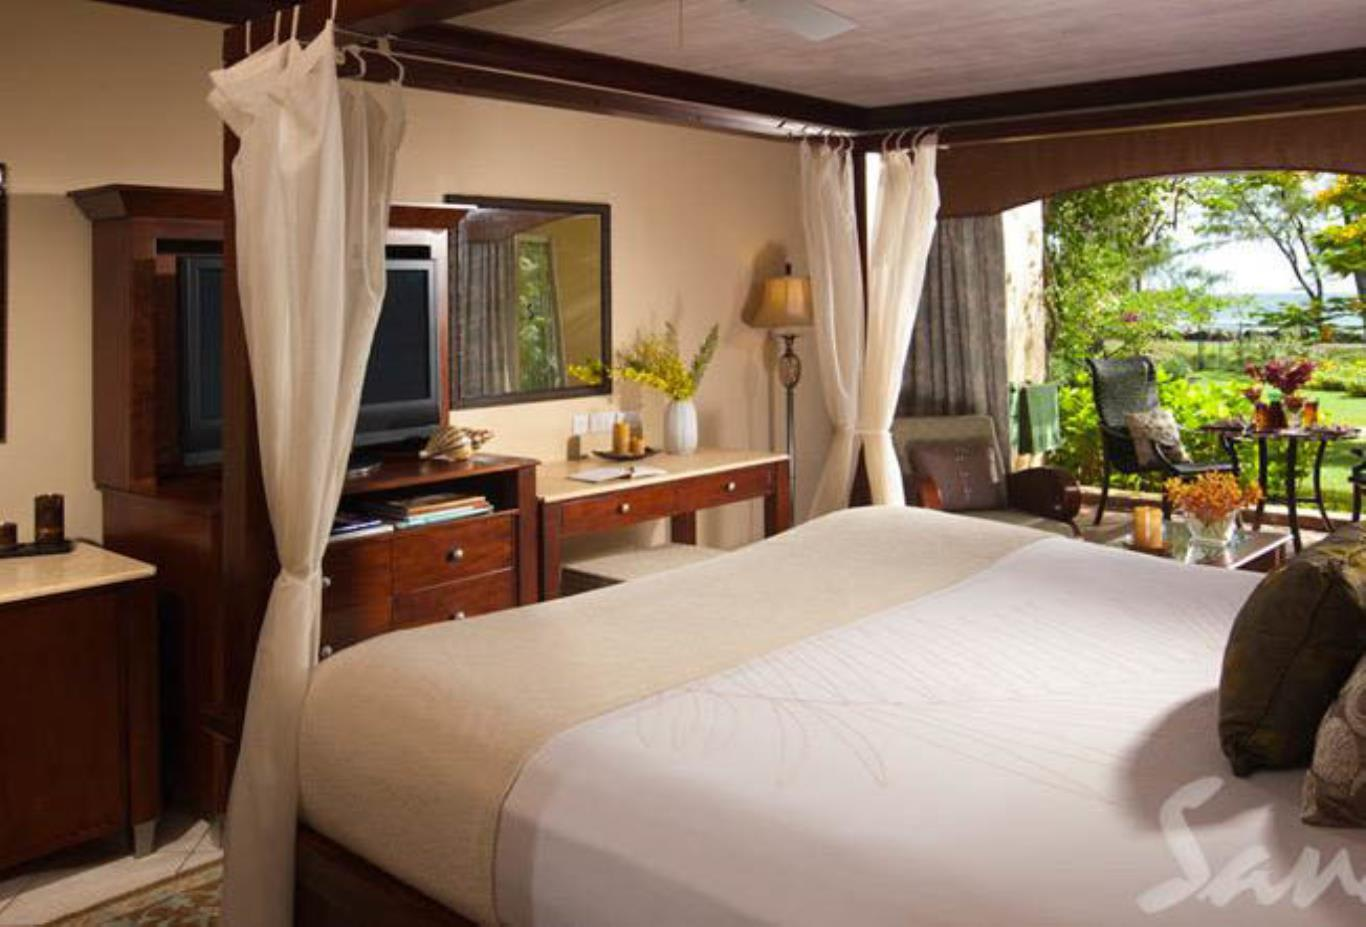 Caribbean Honeymoon Walkout Room - CW